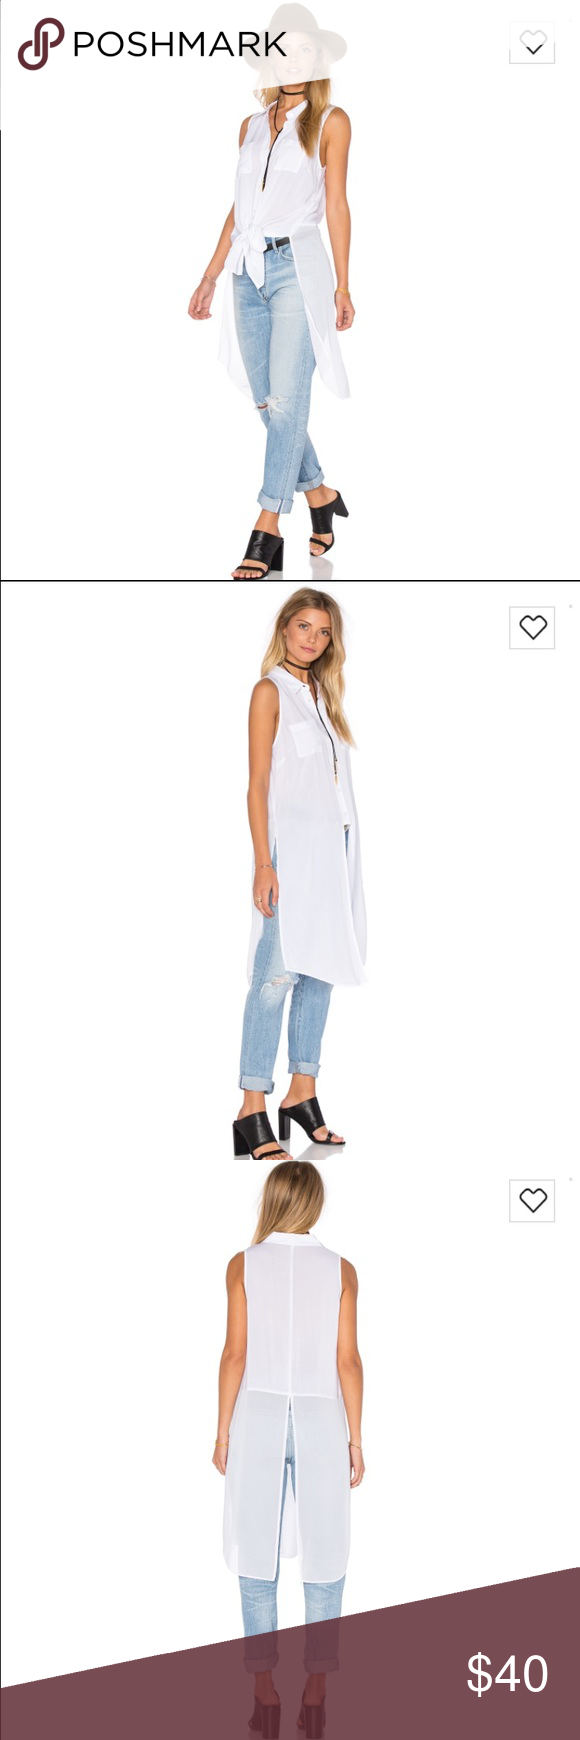 BCBGeneration top Elongated button up top. New with tags. BCBGeneration Tops